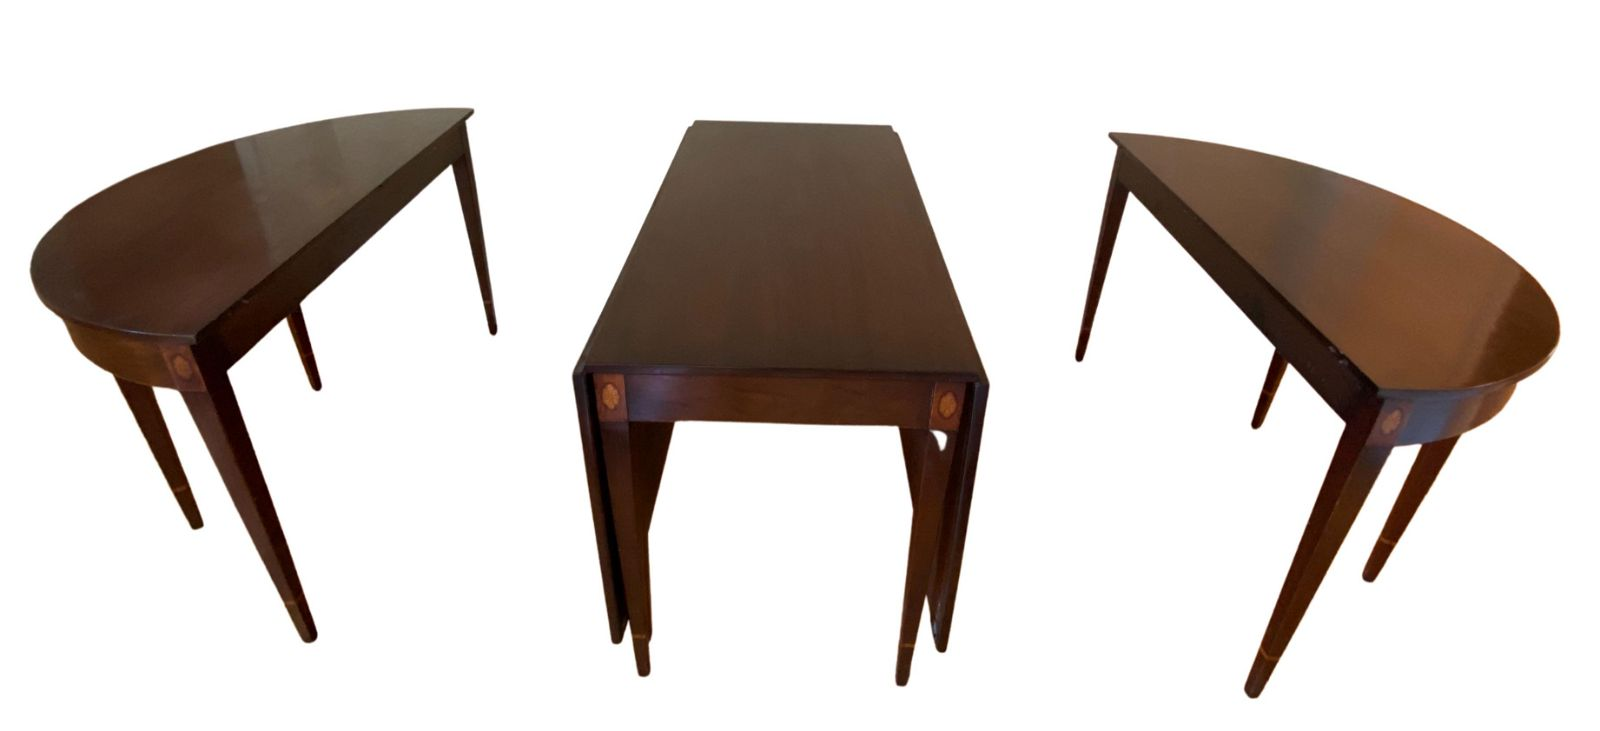 American Federal D-end extending dining table in three